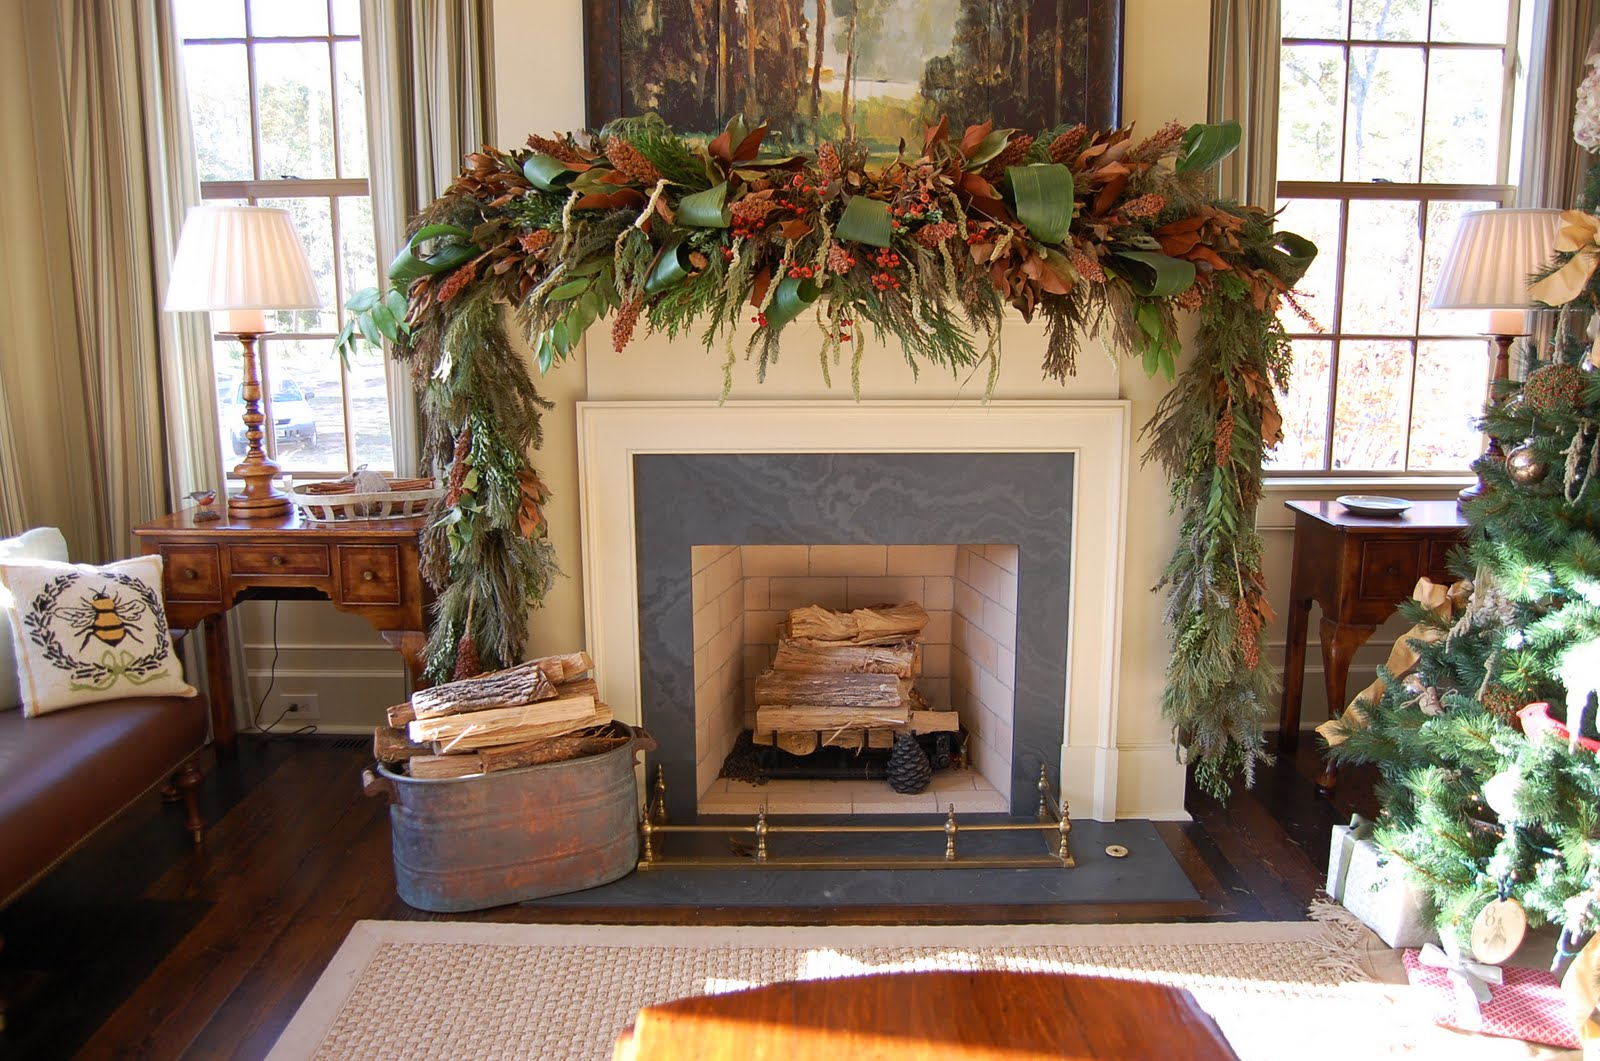 Christmas Garland Ideas For Small Fireplace : Christmas mantel decorated with natural greenery in